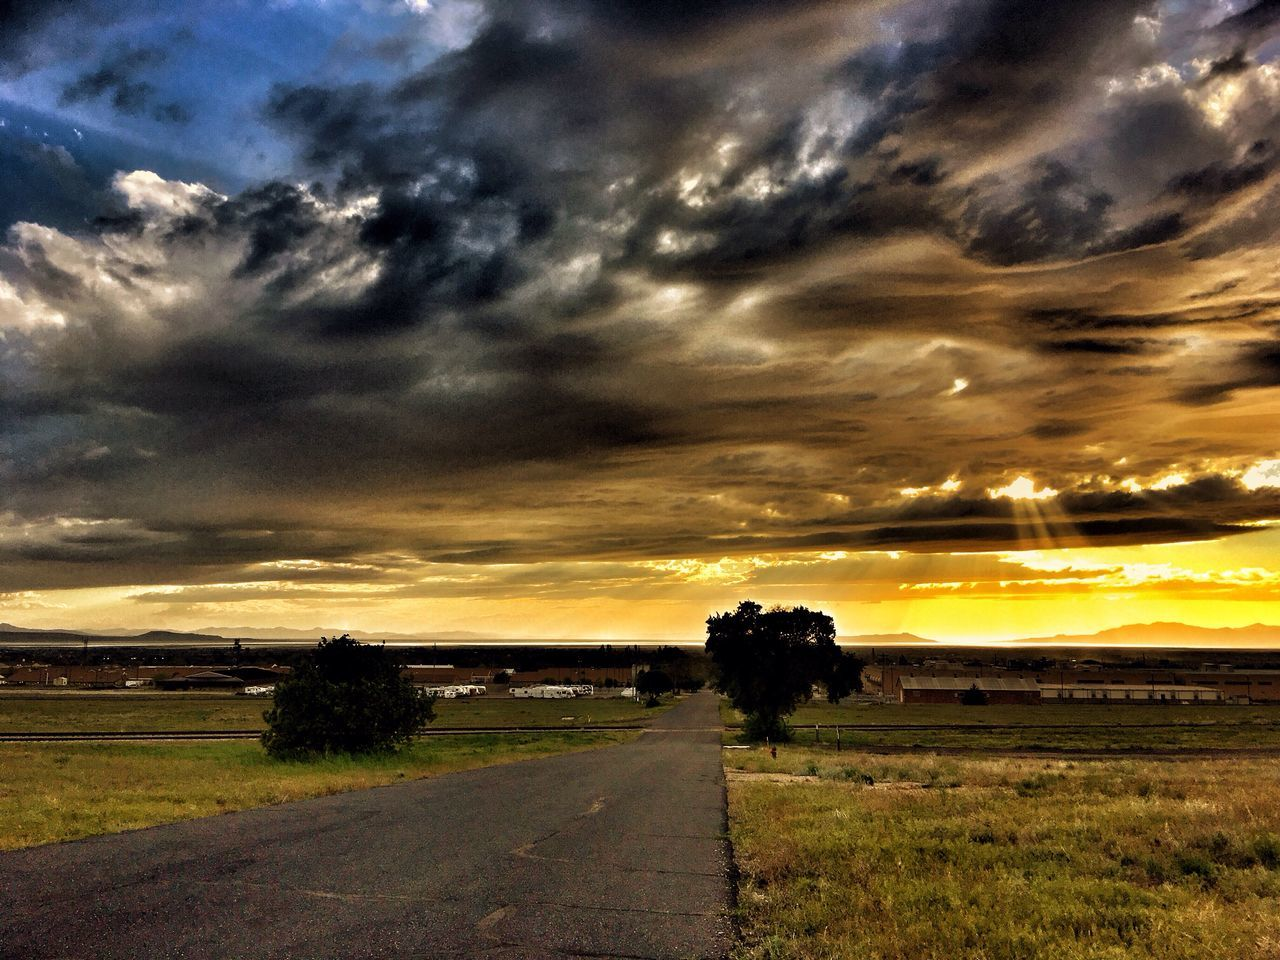 Another fabulous Utah sunset. Sunset The Great Outdoors - 2016 EyeEm Awards Landscape Utah Landscape_Collection Lanscape Photography Hill AFB Landscape_photography Cloud Clouds And Sky Cloudporn